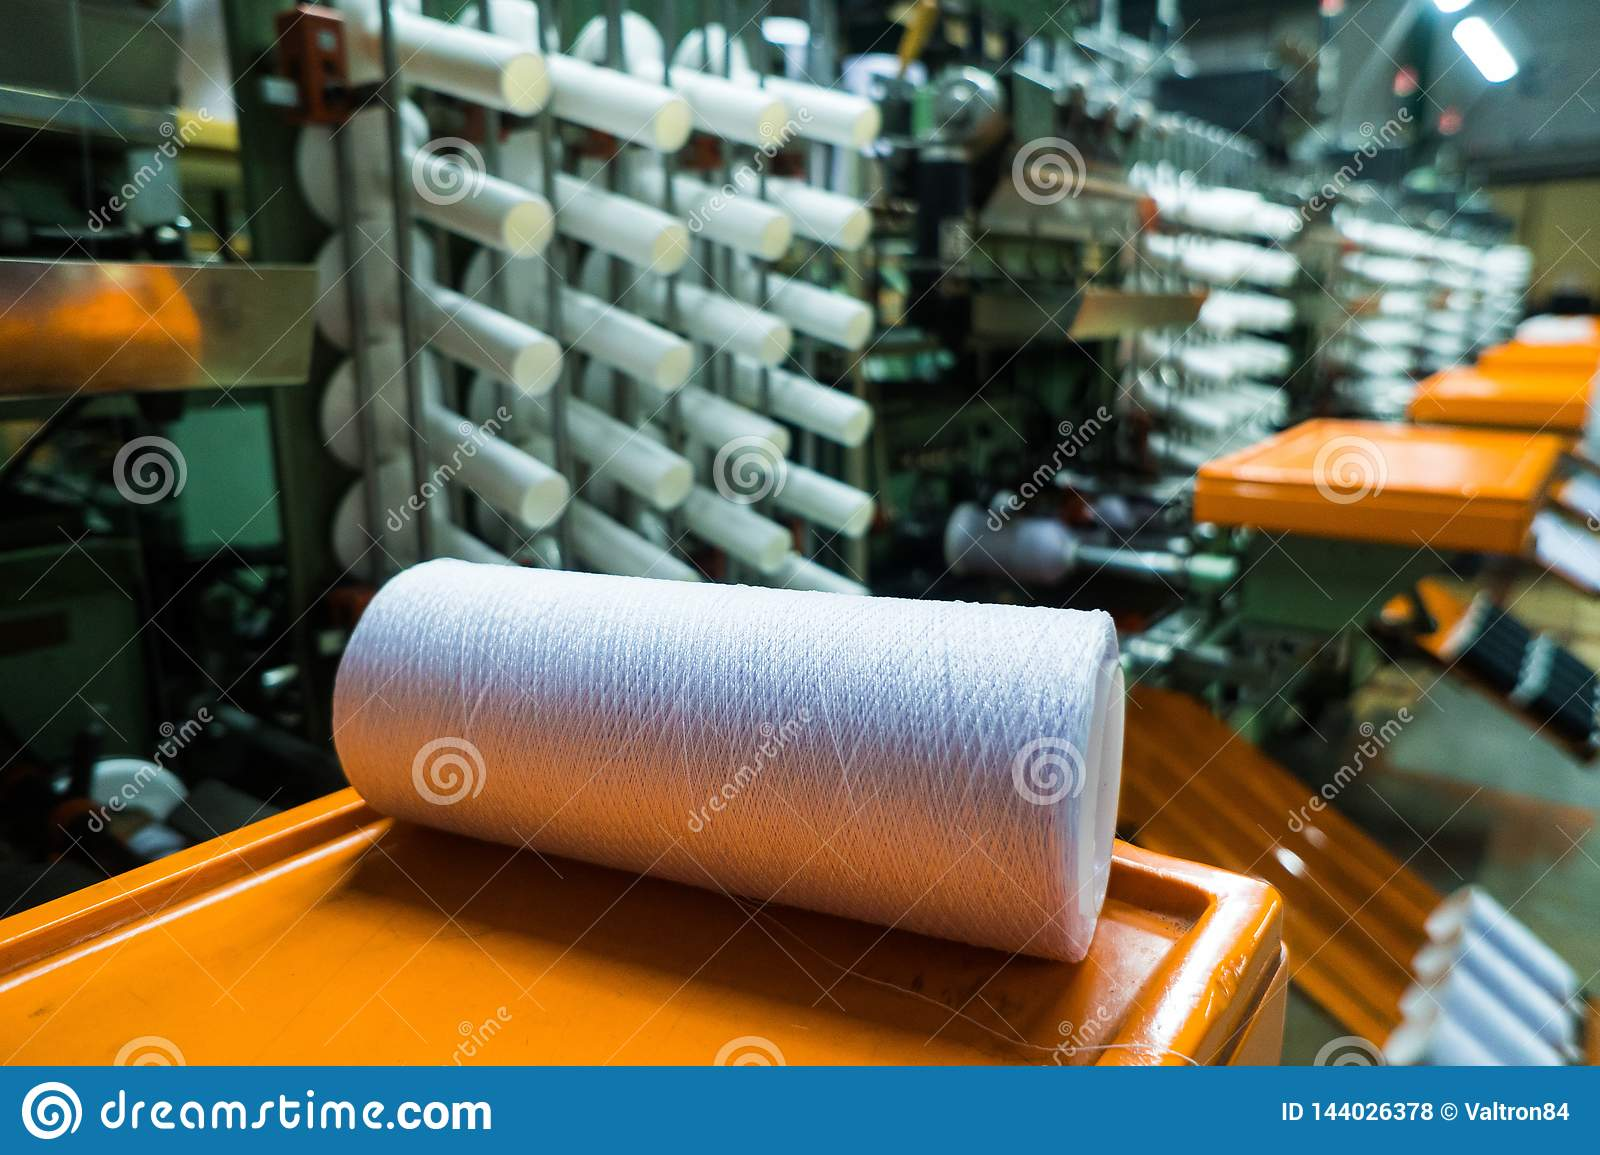 Production product knitted fabrics